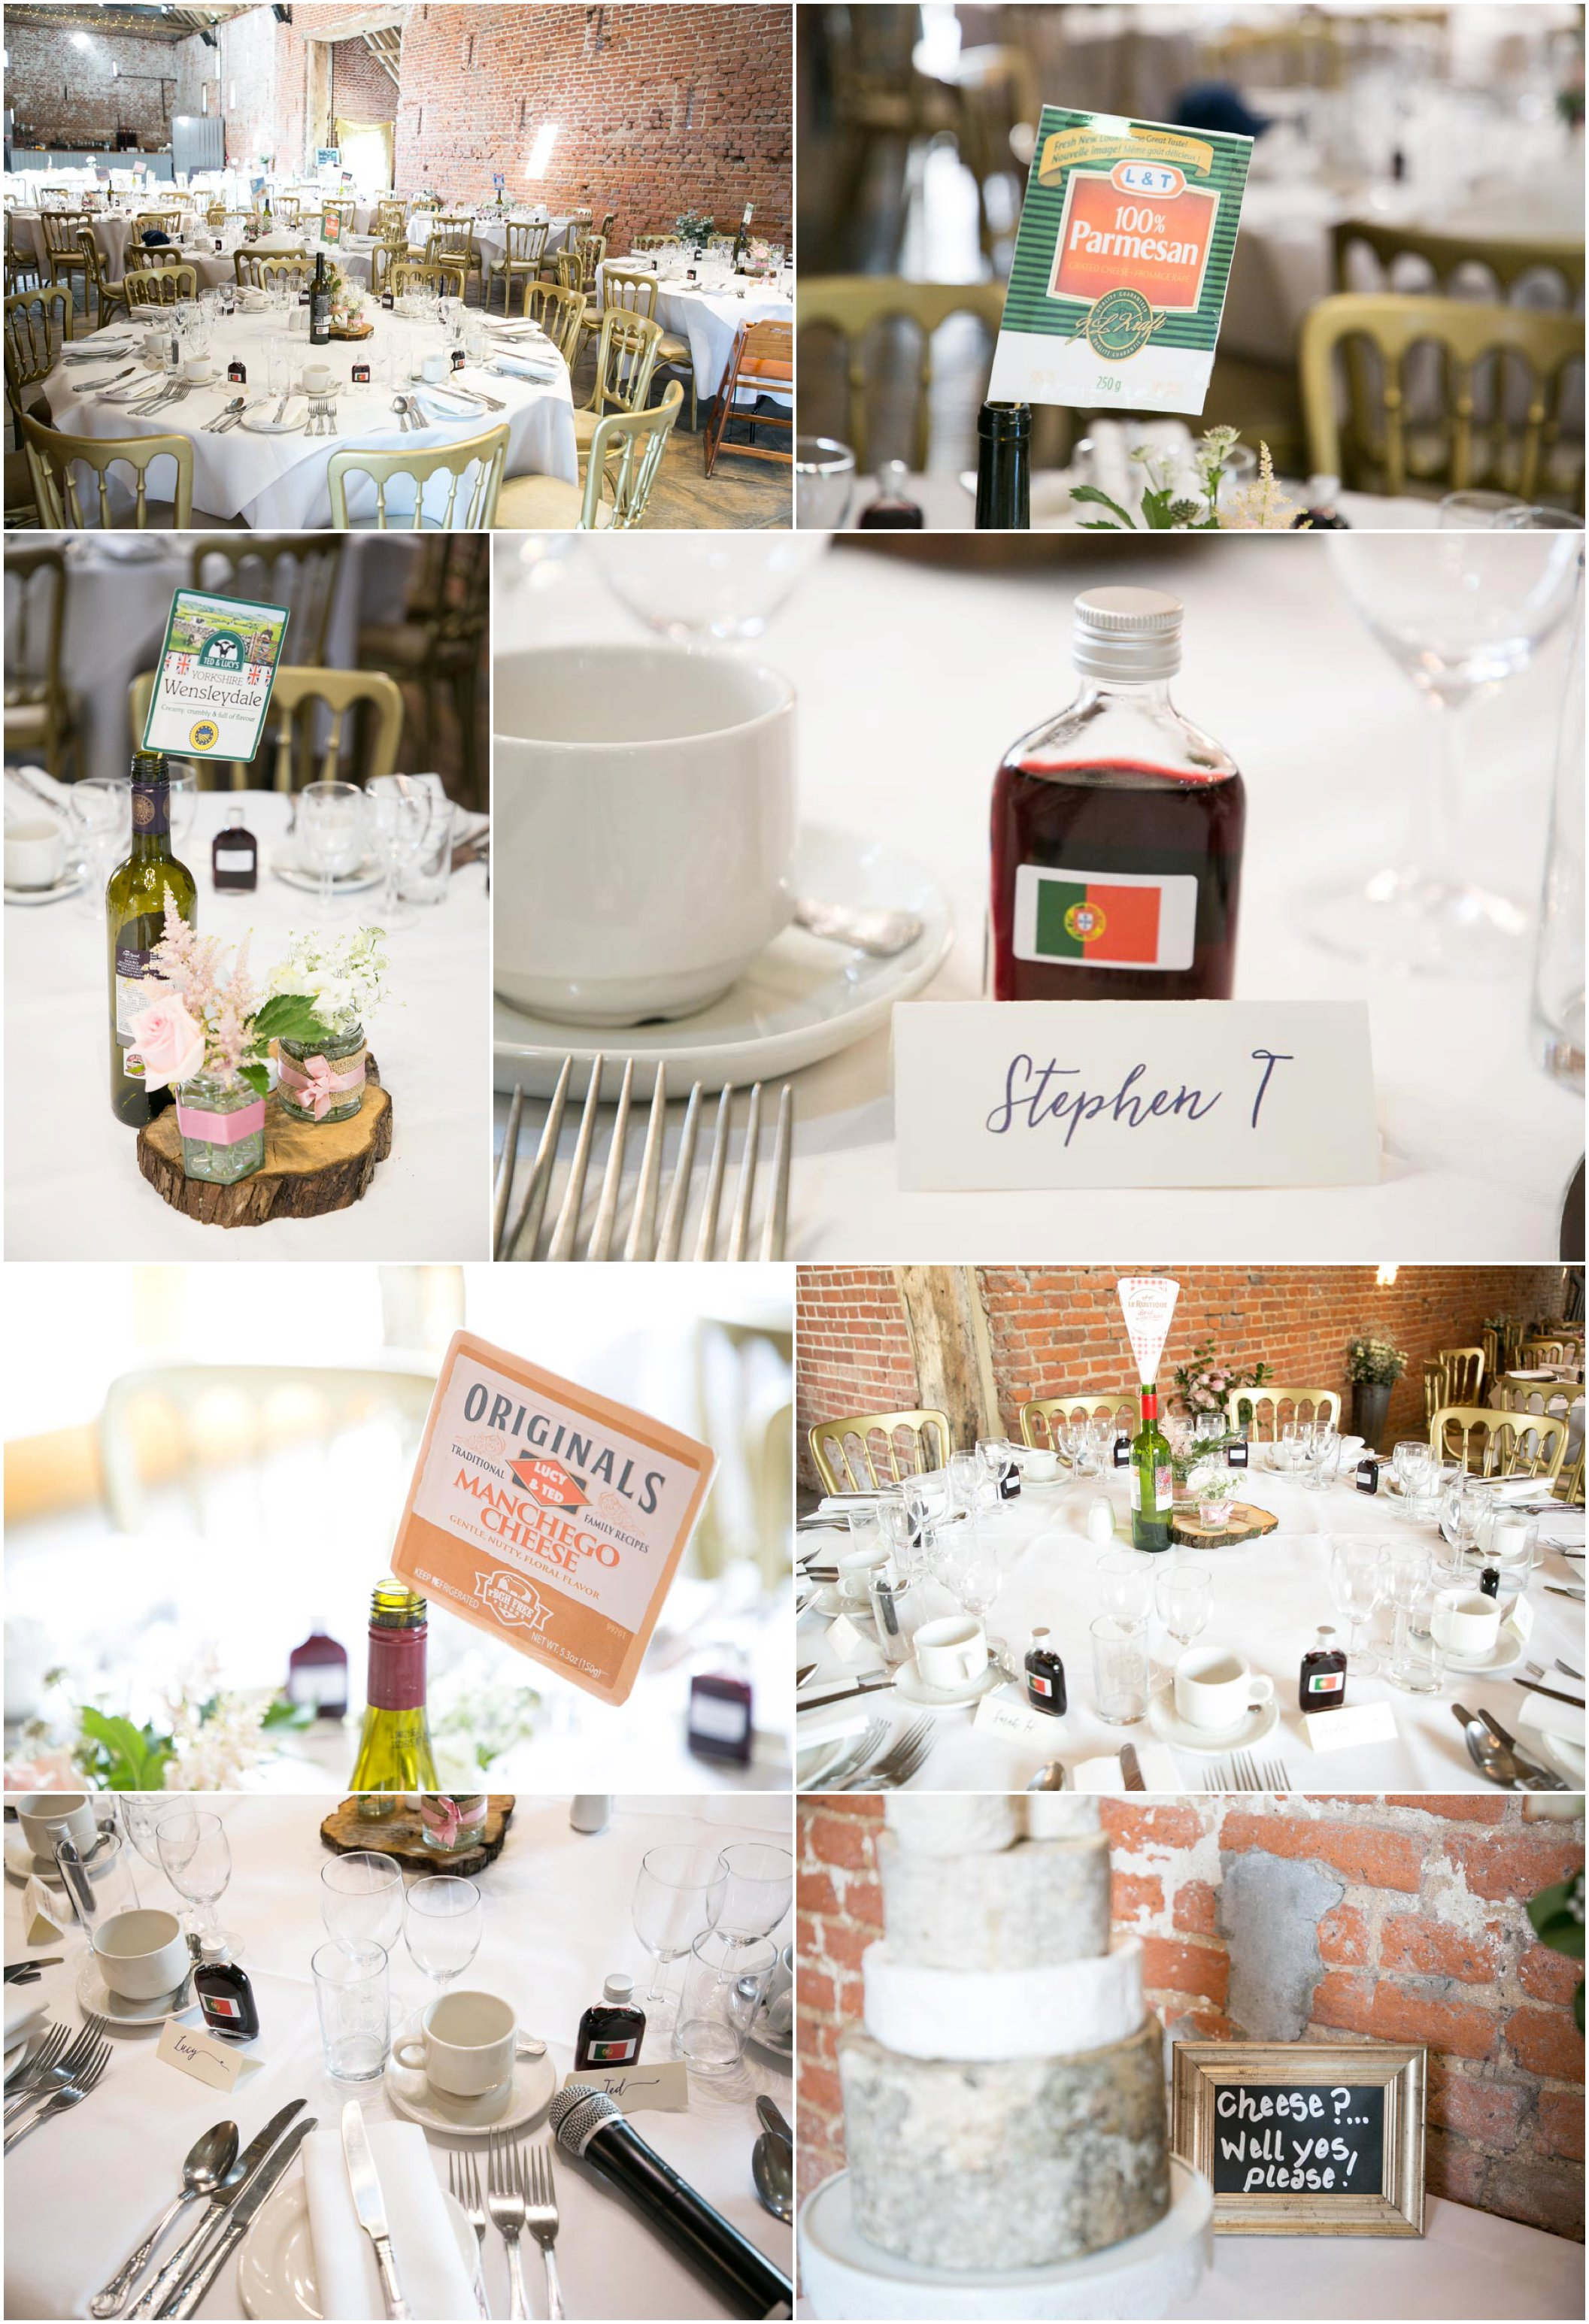 details of wedding tables at barn wedding, cheese theme, their own lables for each table